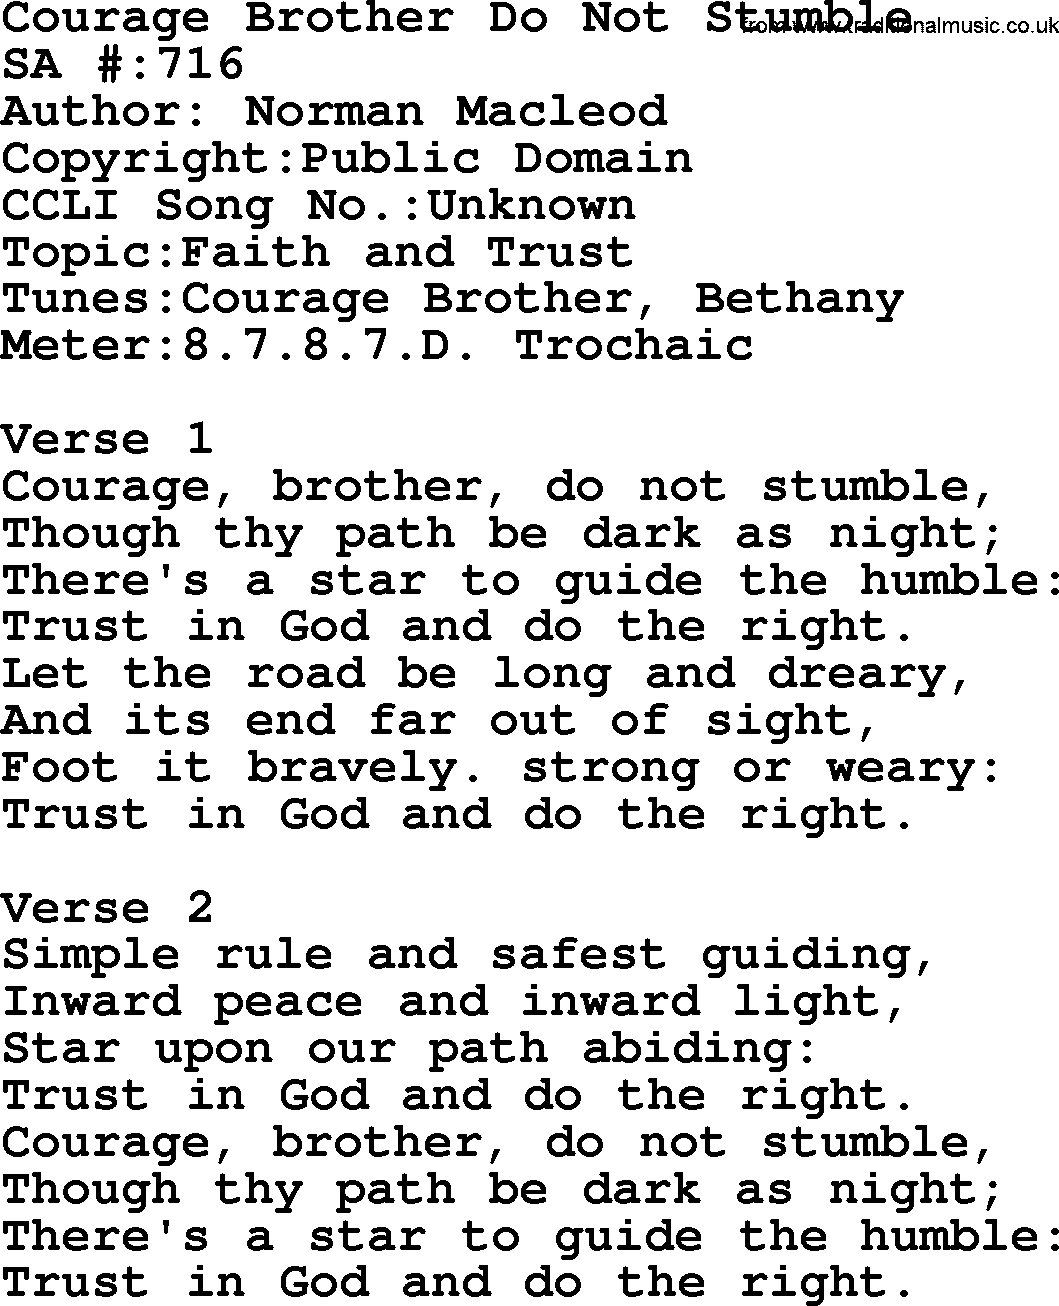 Hymns about courage